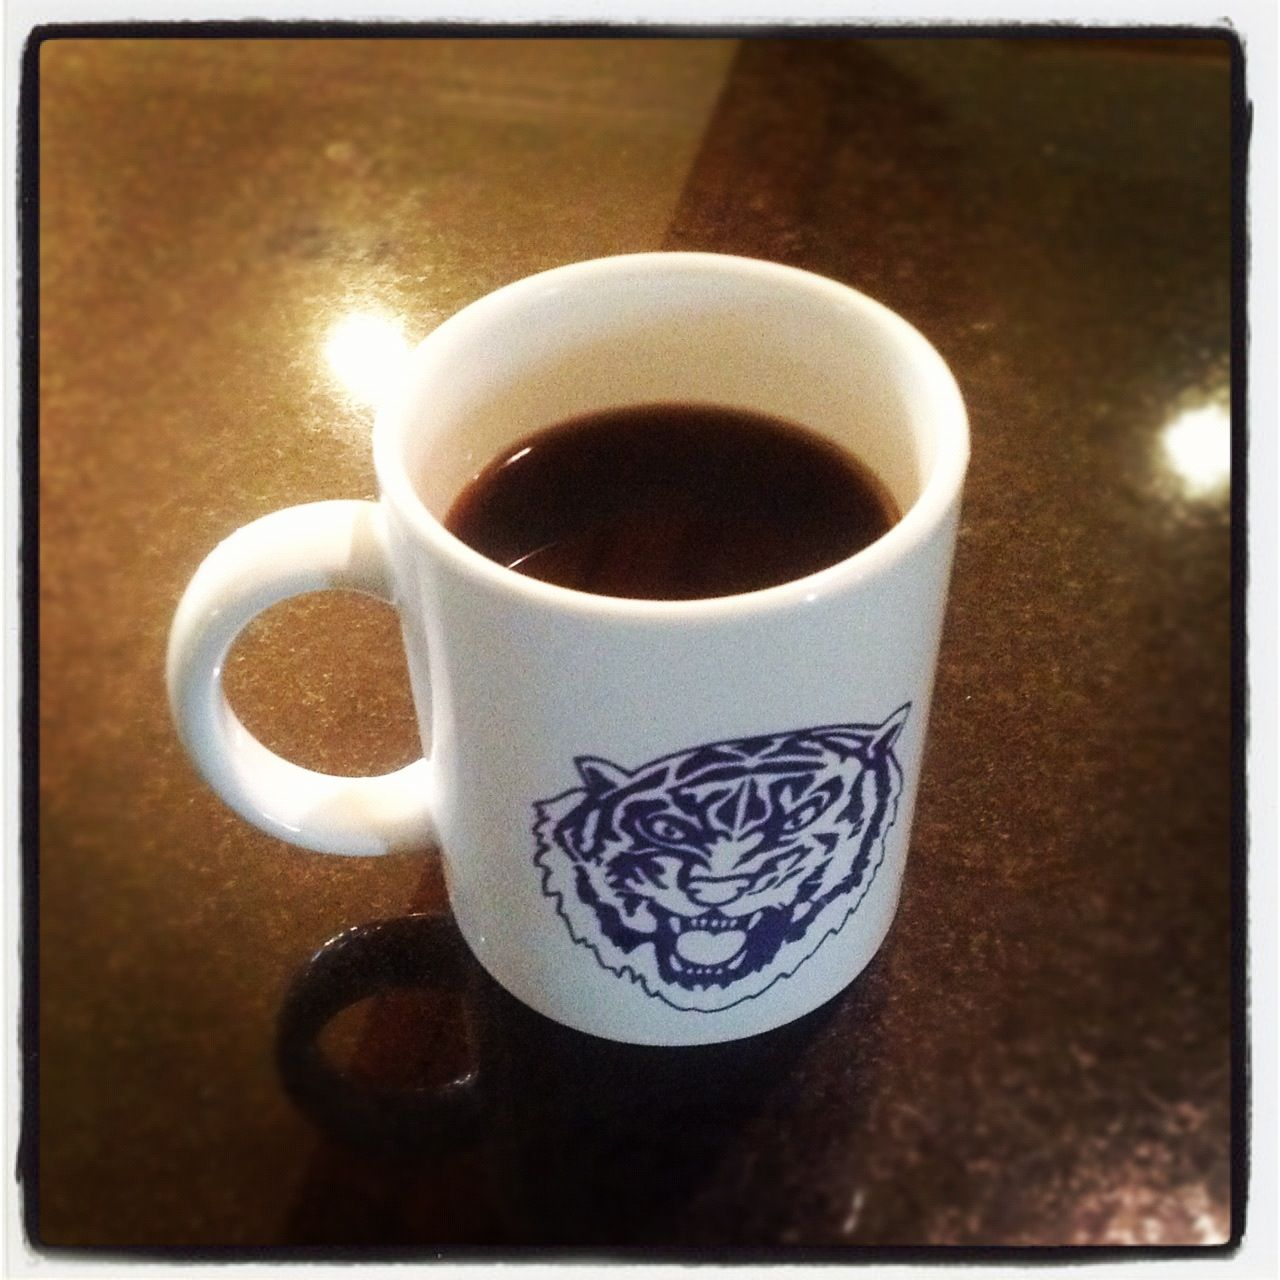 Coffee 365 Another Day In Baton Rouge Another Lsu Coffee Mug And To Keep It All Local I M Drinking Louisiana Coffee Branding Community Coffee Dark Roast